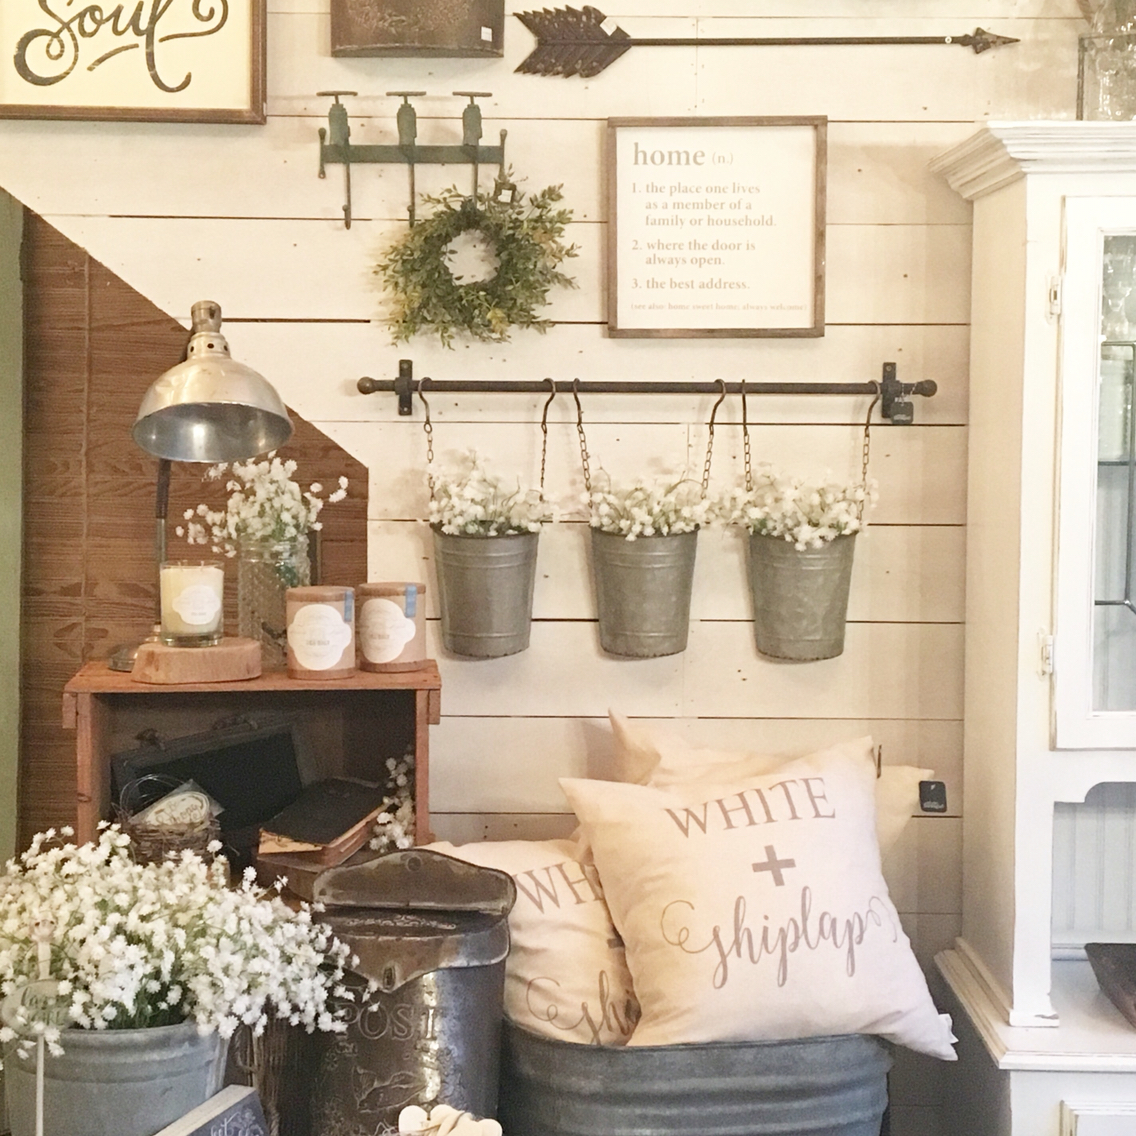 Kitchen wall decor rustic designs cabinet paint colors decorations primitive decorating ideas - Kitchen wall decorating ideas ...